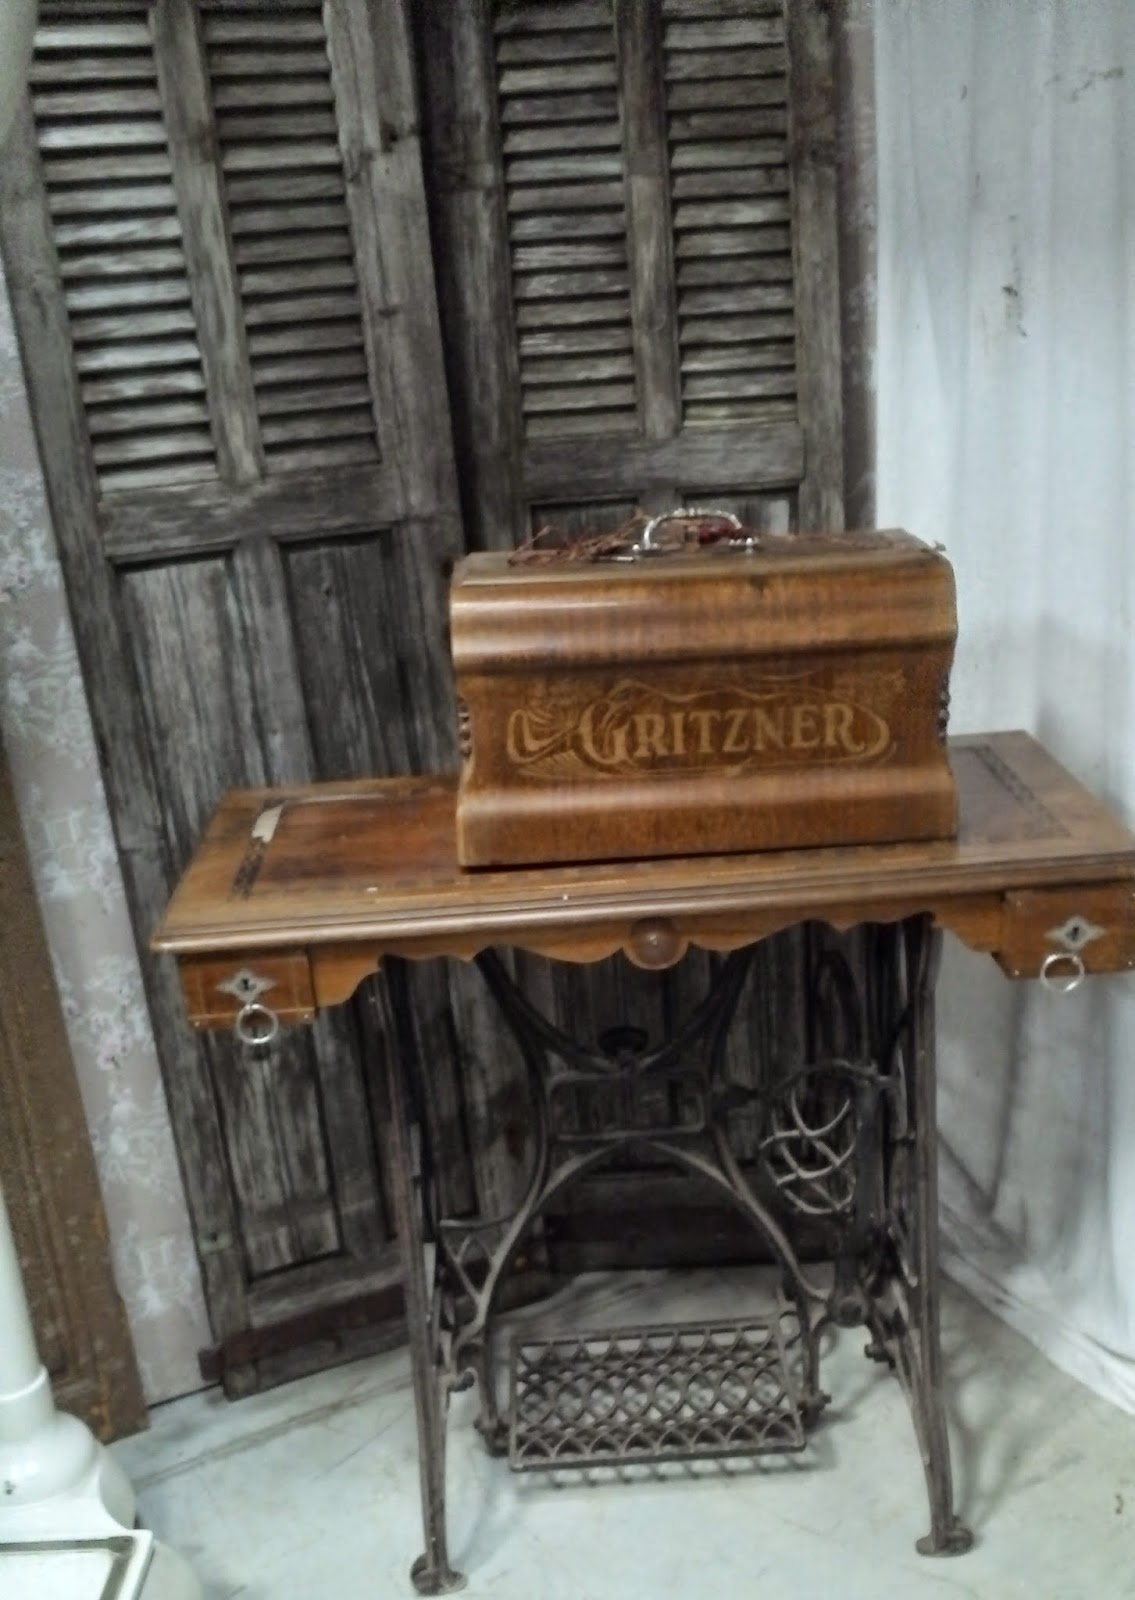 machine a coudre ancienne gritzner annees 1900 durlach. Black Bedroom Furniture Sets. Home Design Ideas